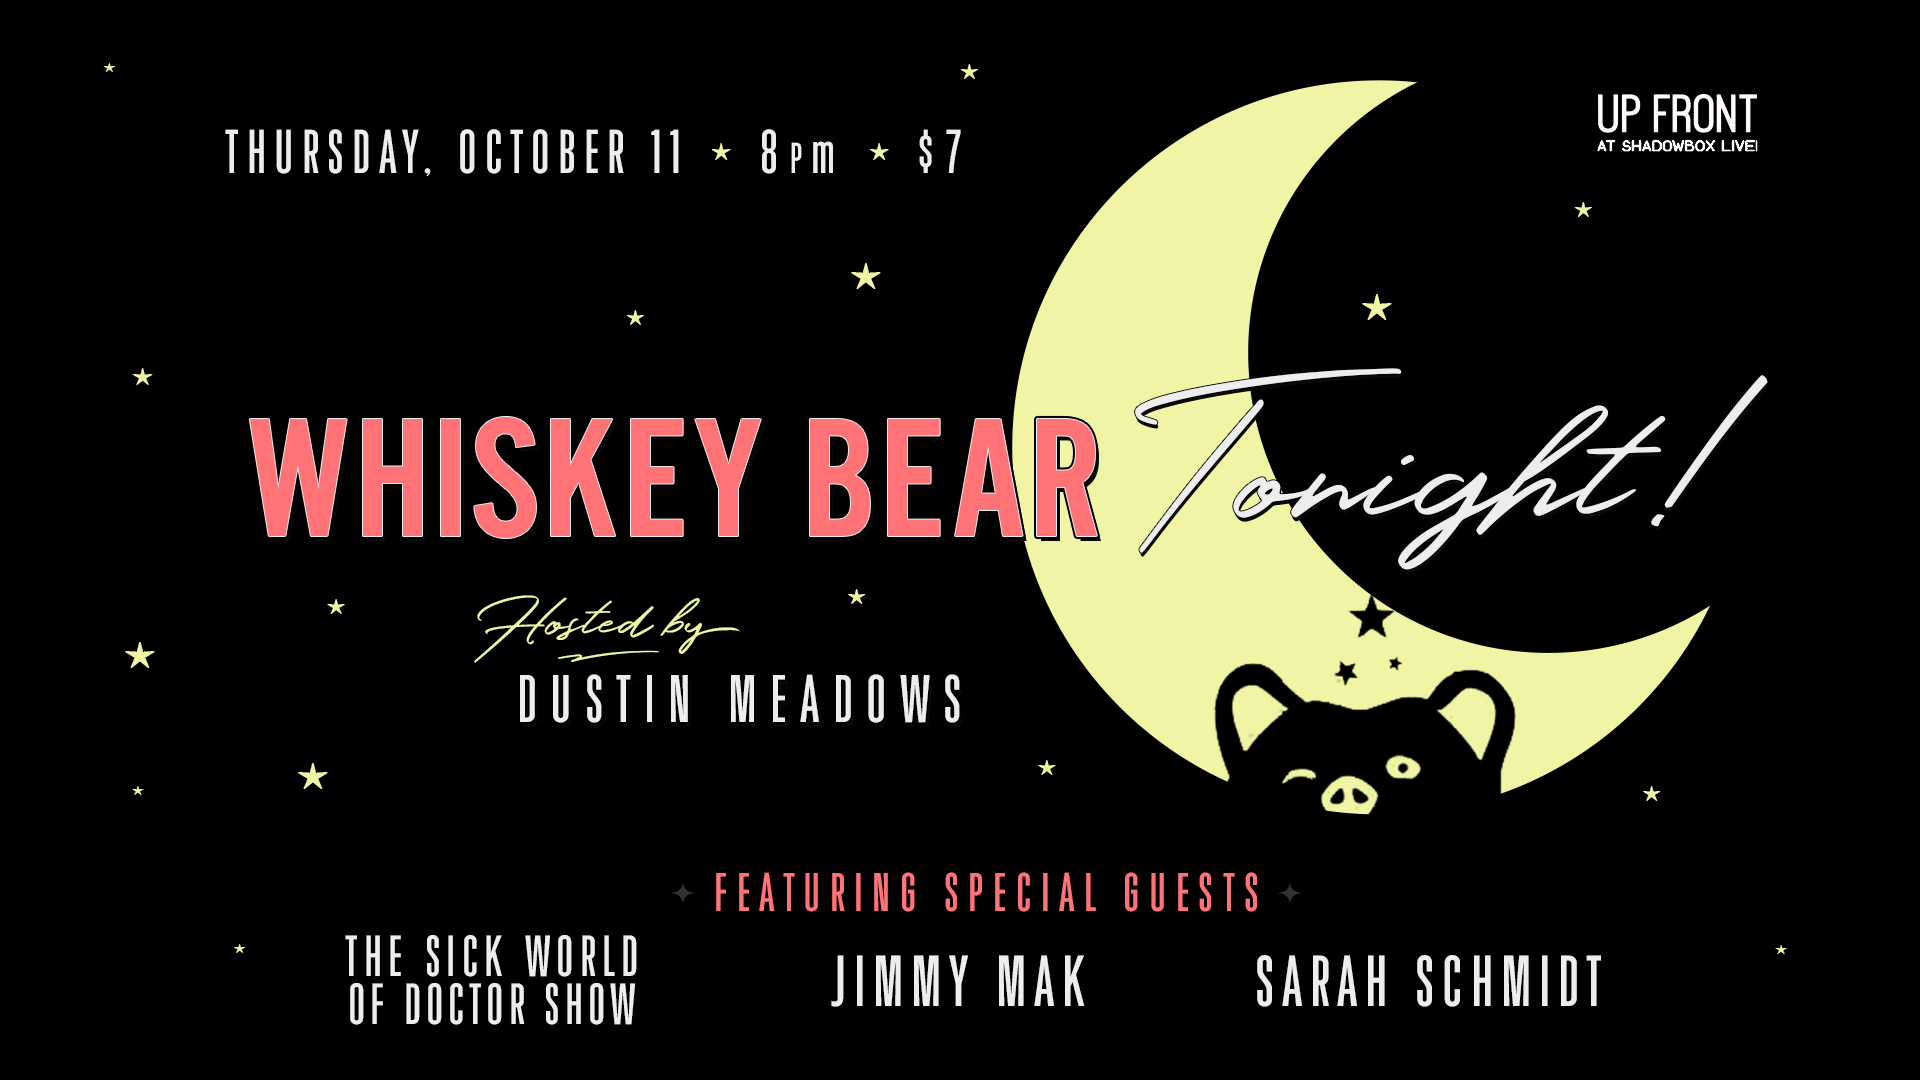 Whiskey Bear Tonight // Oct 11 @ 8PM // Up Front at Shadowbox Live